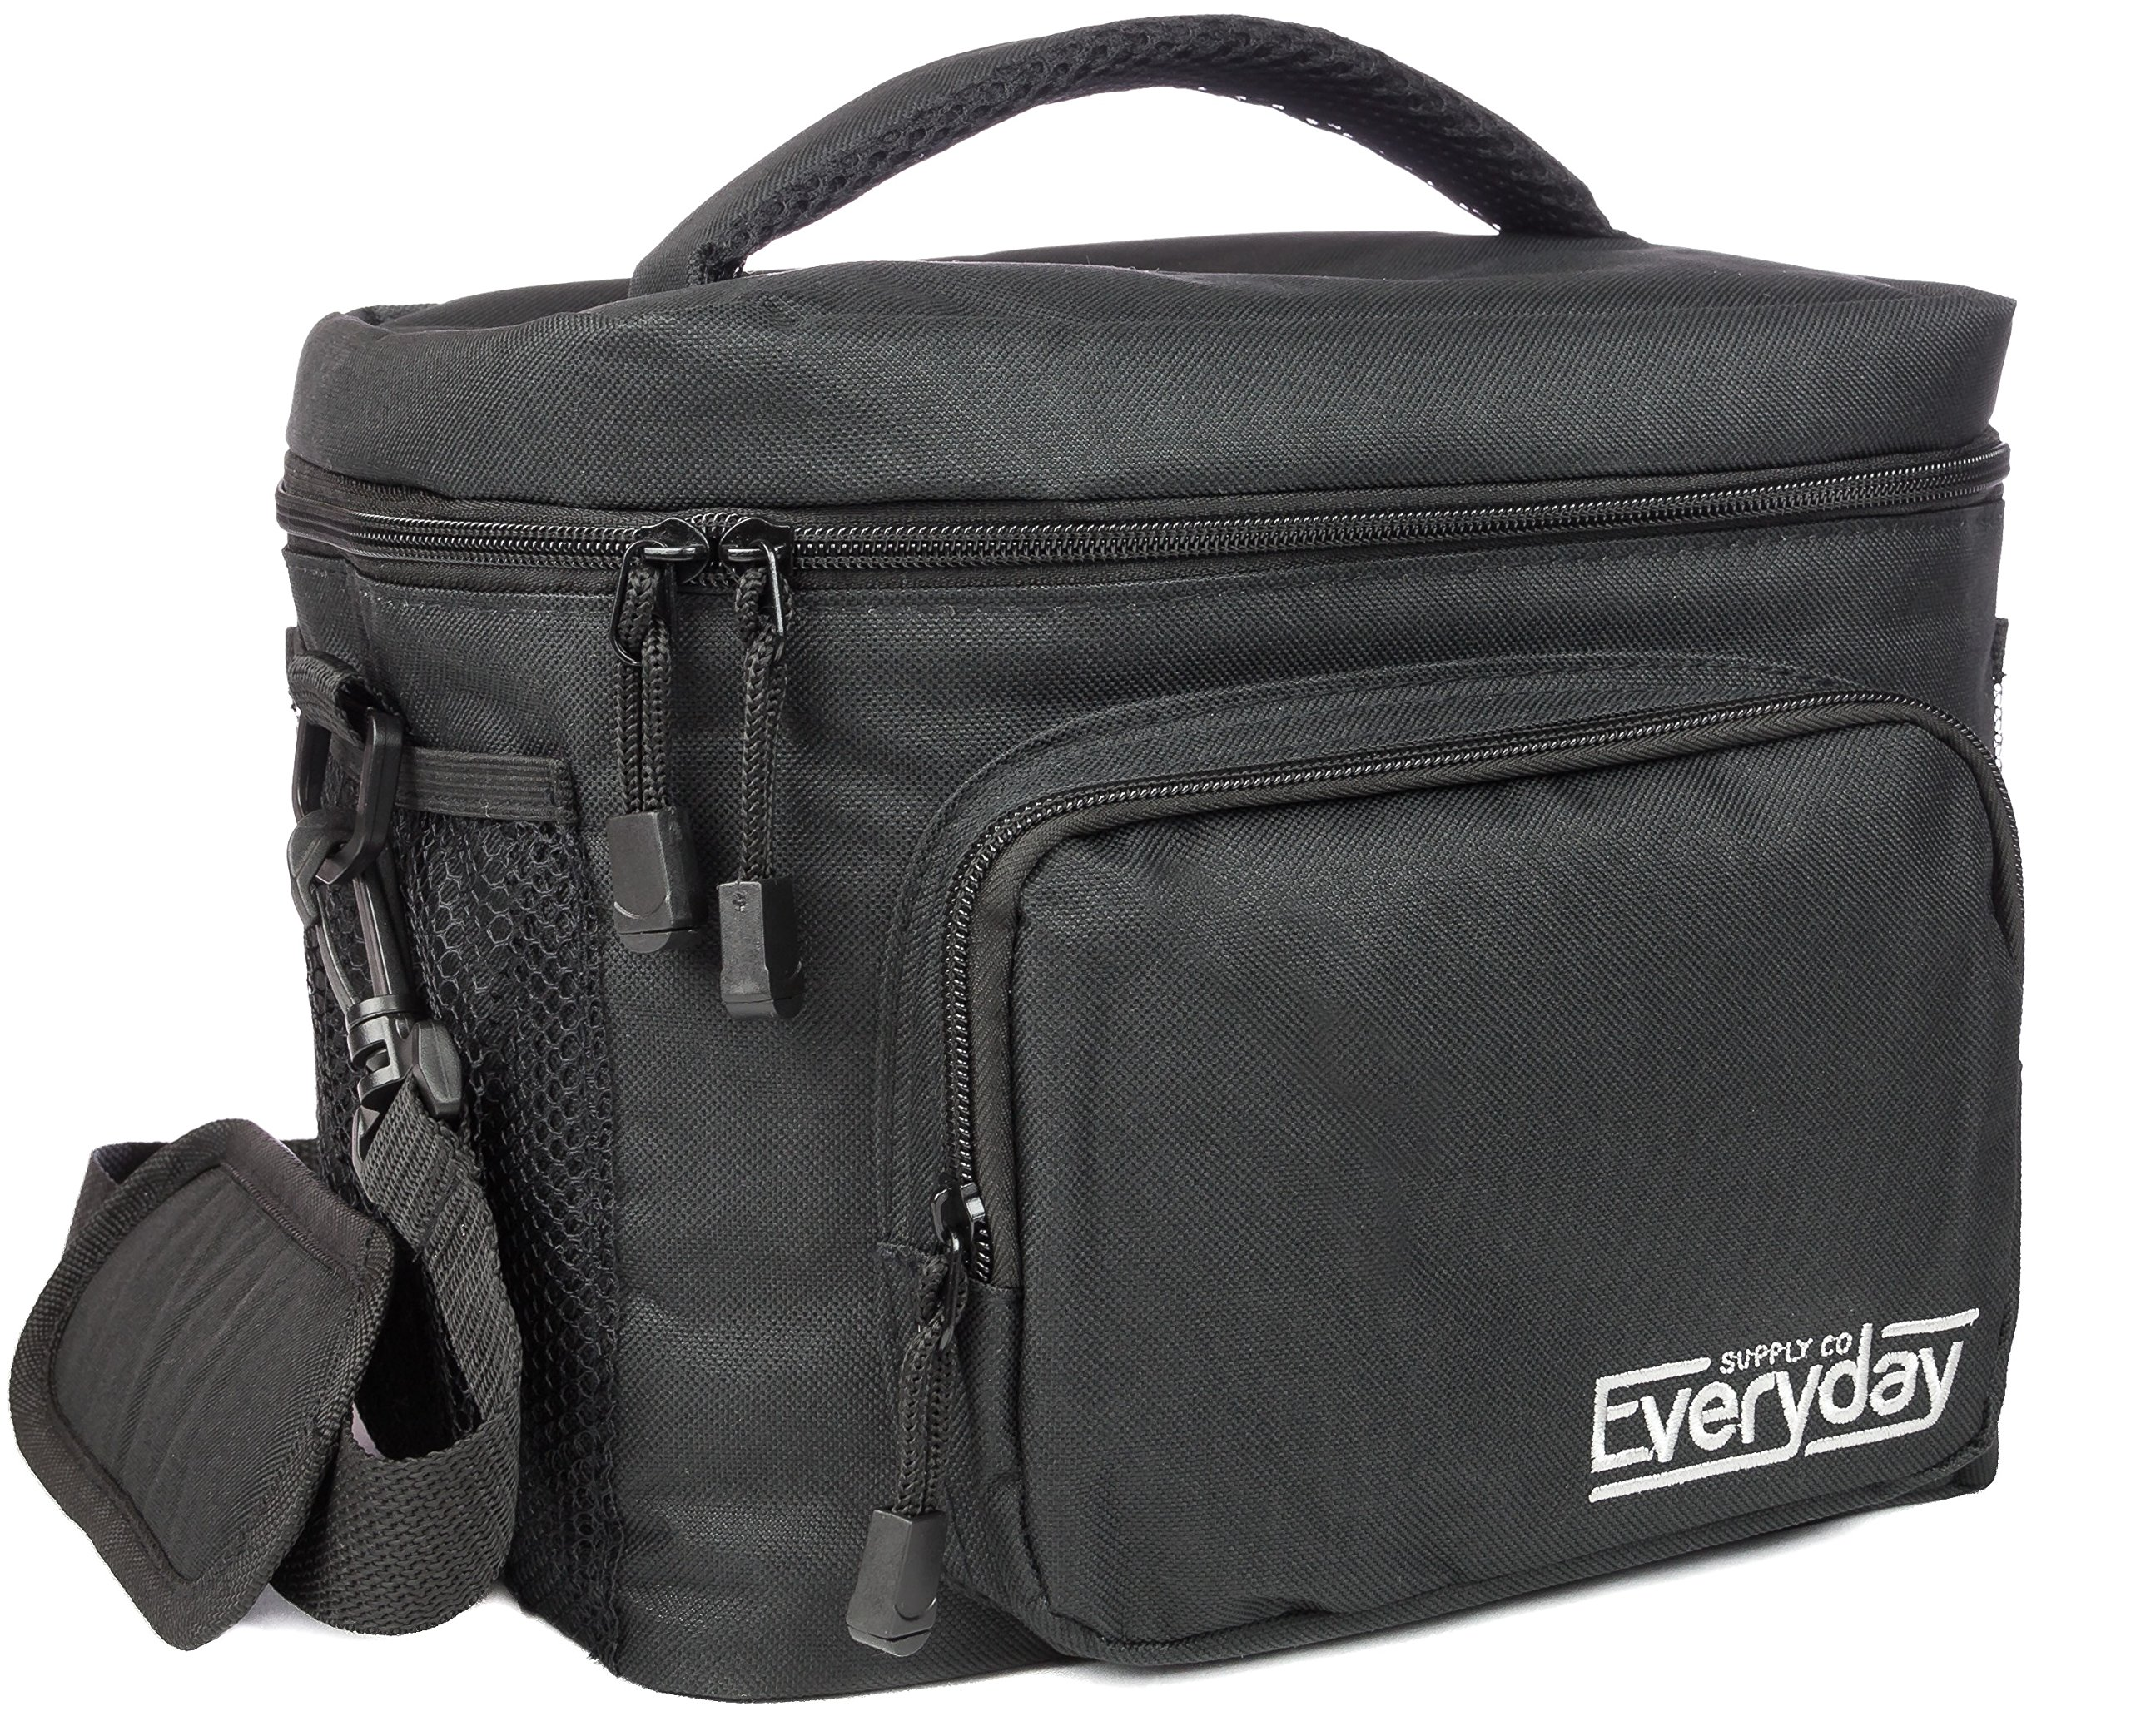 Insulated Lunch Bag for Men | Adult Lunch Box | Lunch Boxes for Men | Cooler Bags | Lunchbox by Everyday Supply Co | Non-Toxic Stain Resistant Nylon | 10 x 7.5 x 9 Inches Black by Everyday Supply Co